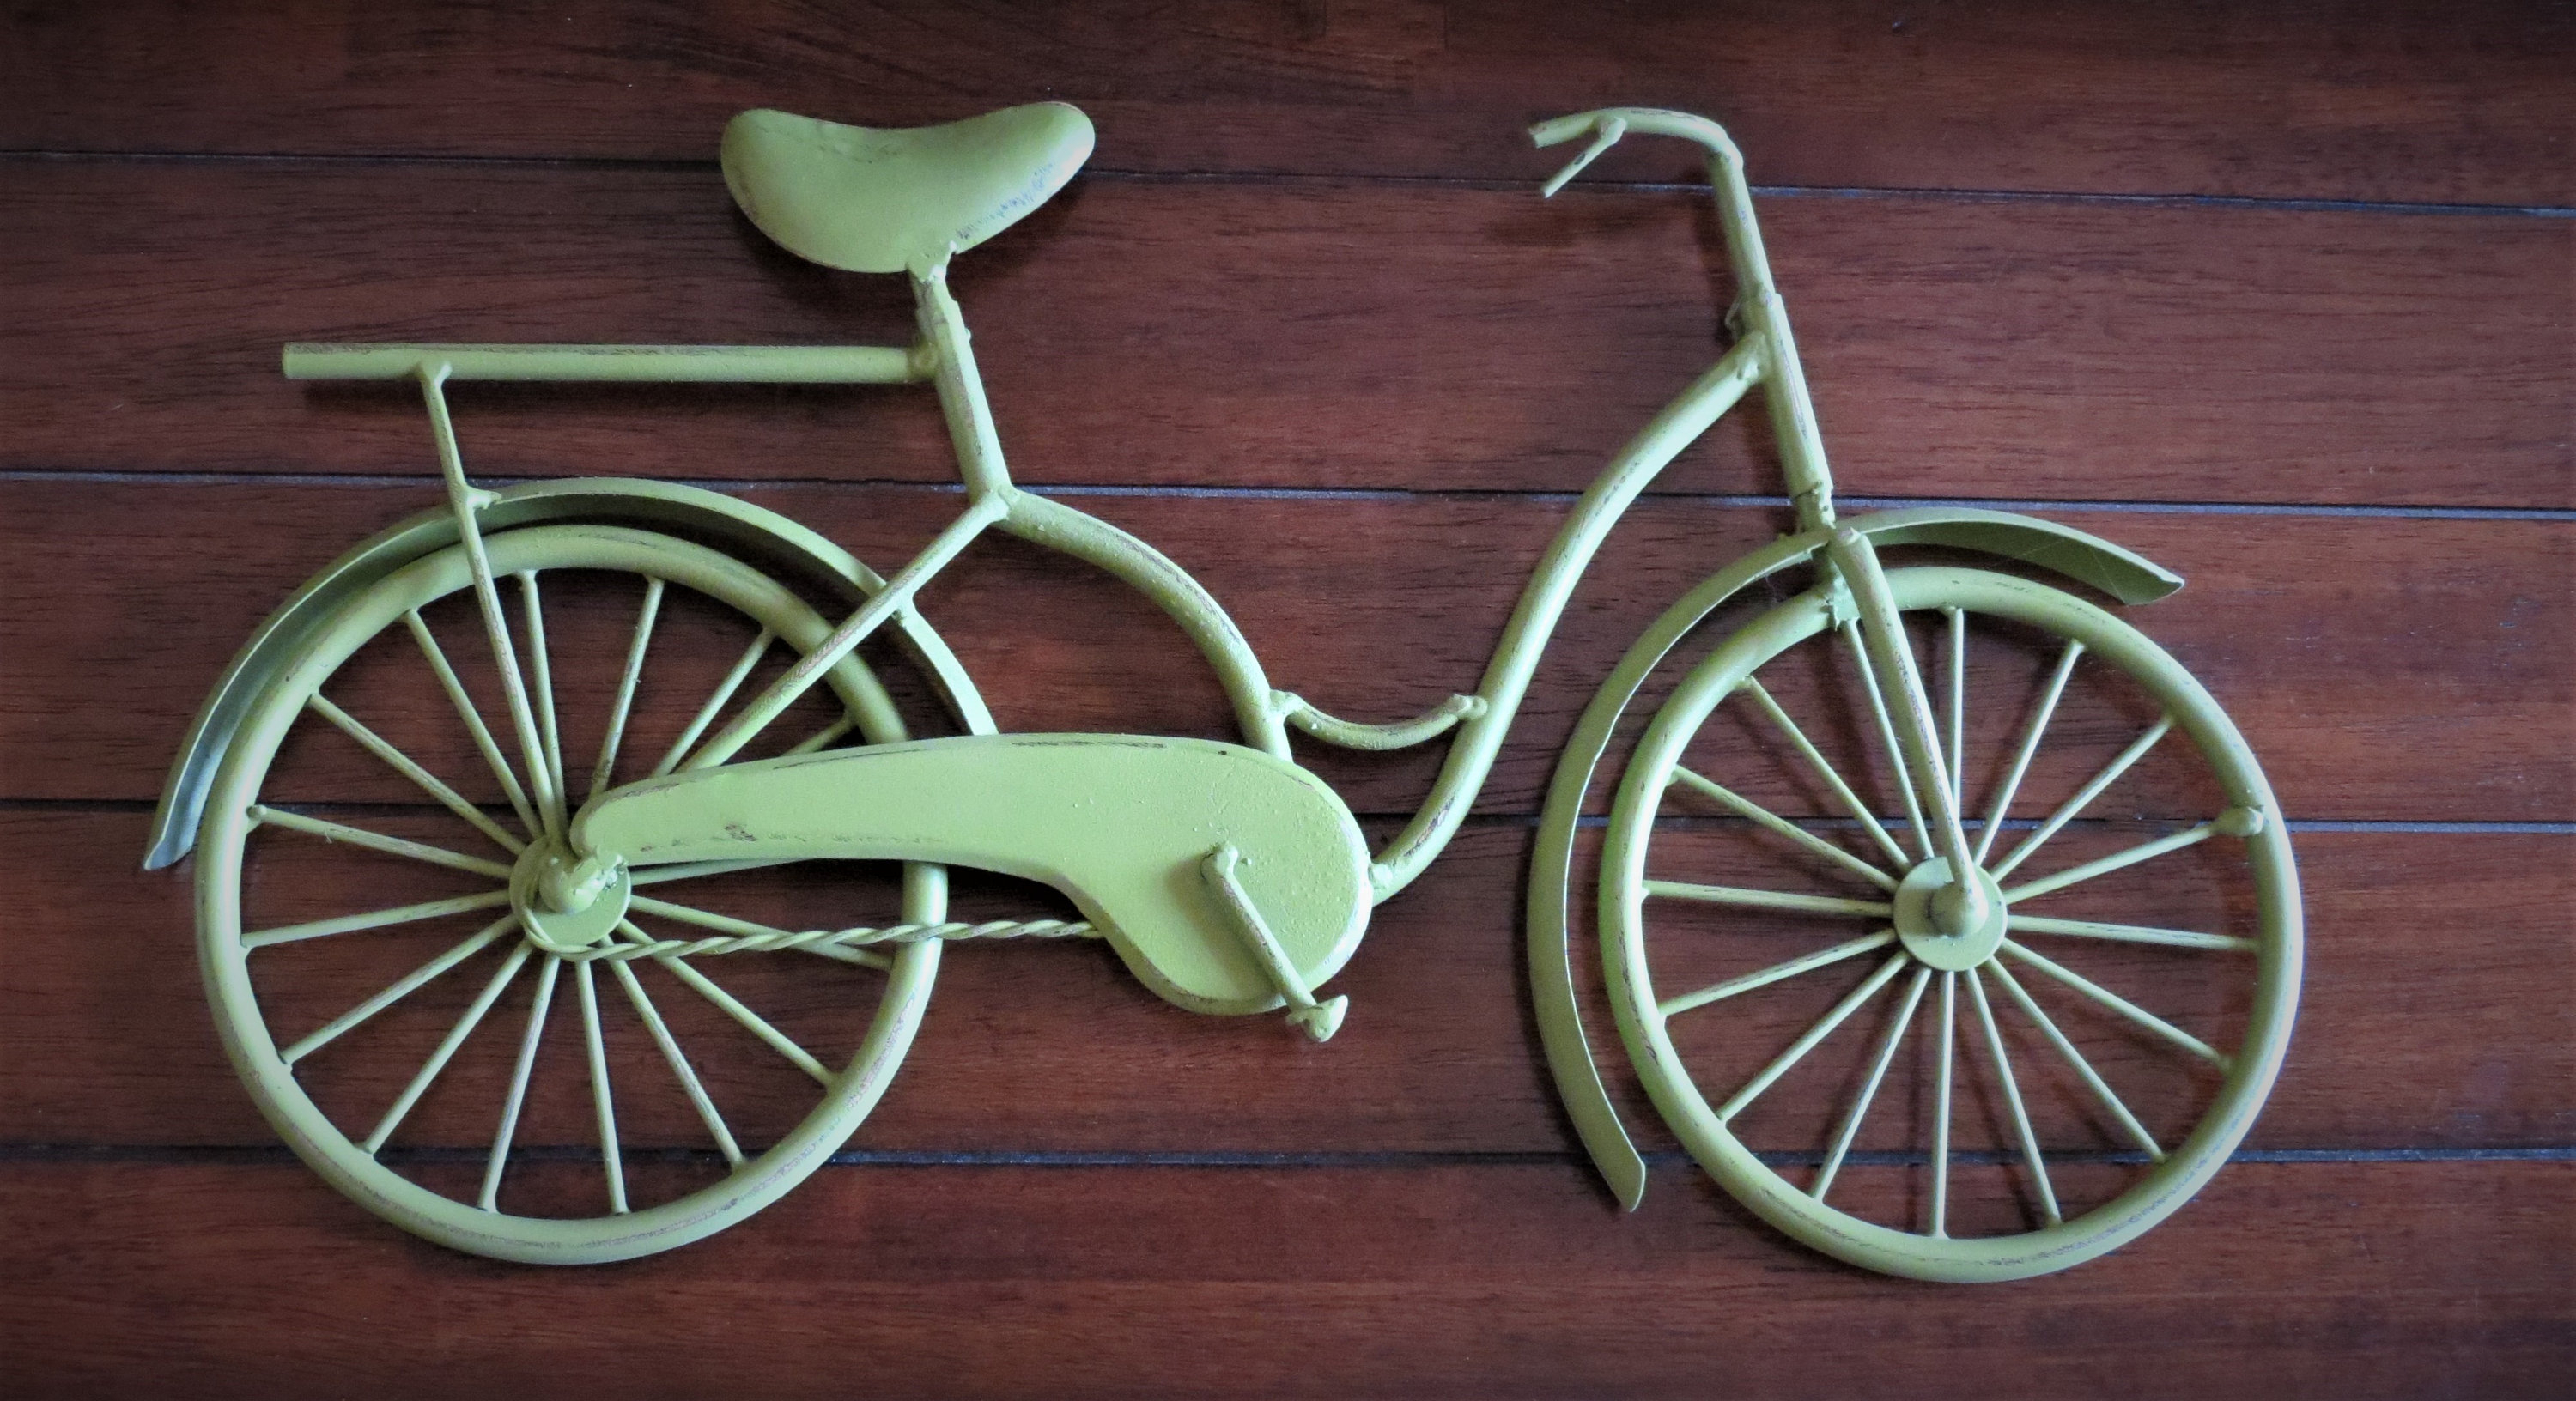 Bike Wall Decor/ Eden Green Or Pick Your Color/ Bicycle Metal Wall Decor/ Unique Wall Idea/ Metal Wall Hanging/ Bicycling Cyclist / Wall Art Throughout Bike Wall Decor (View 9 of 30)